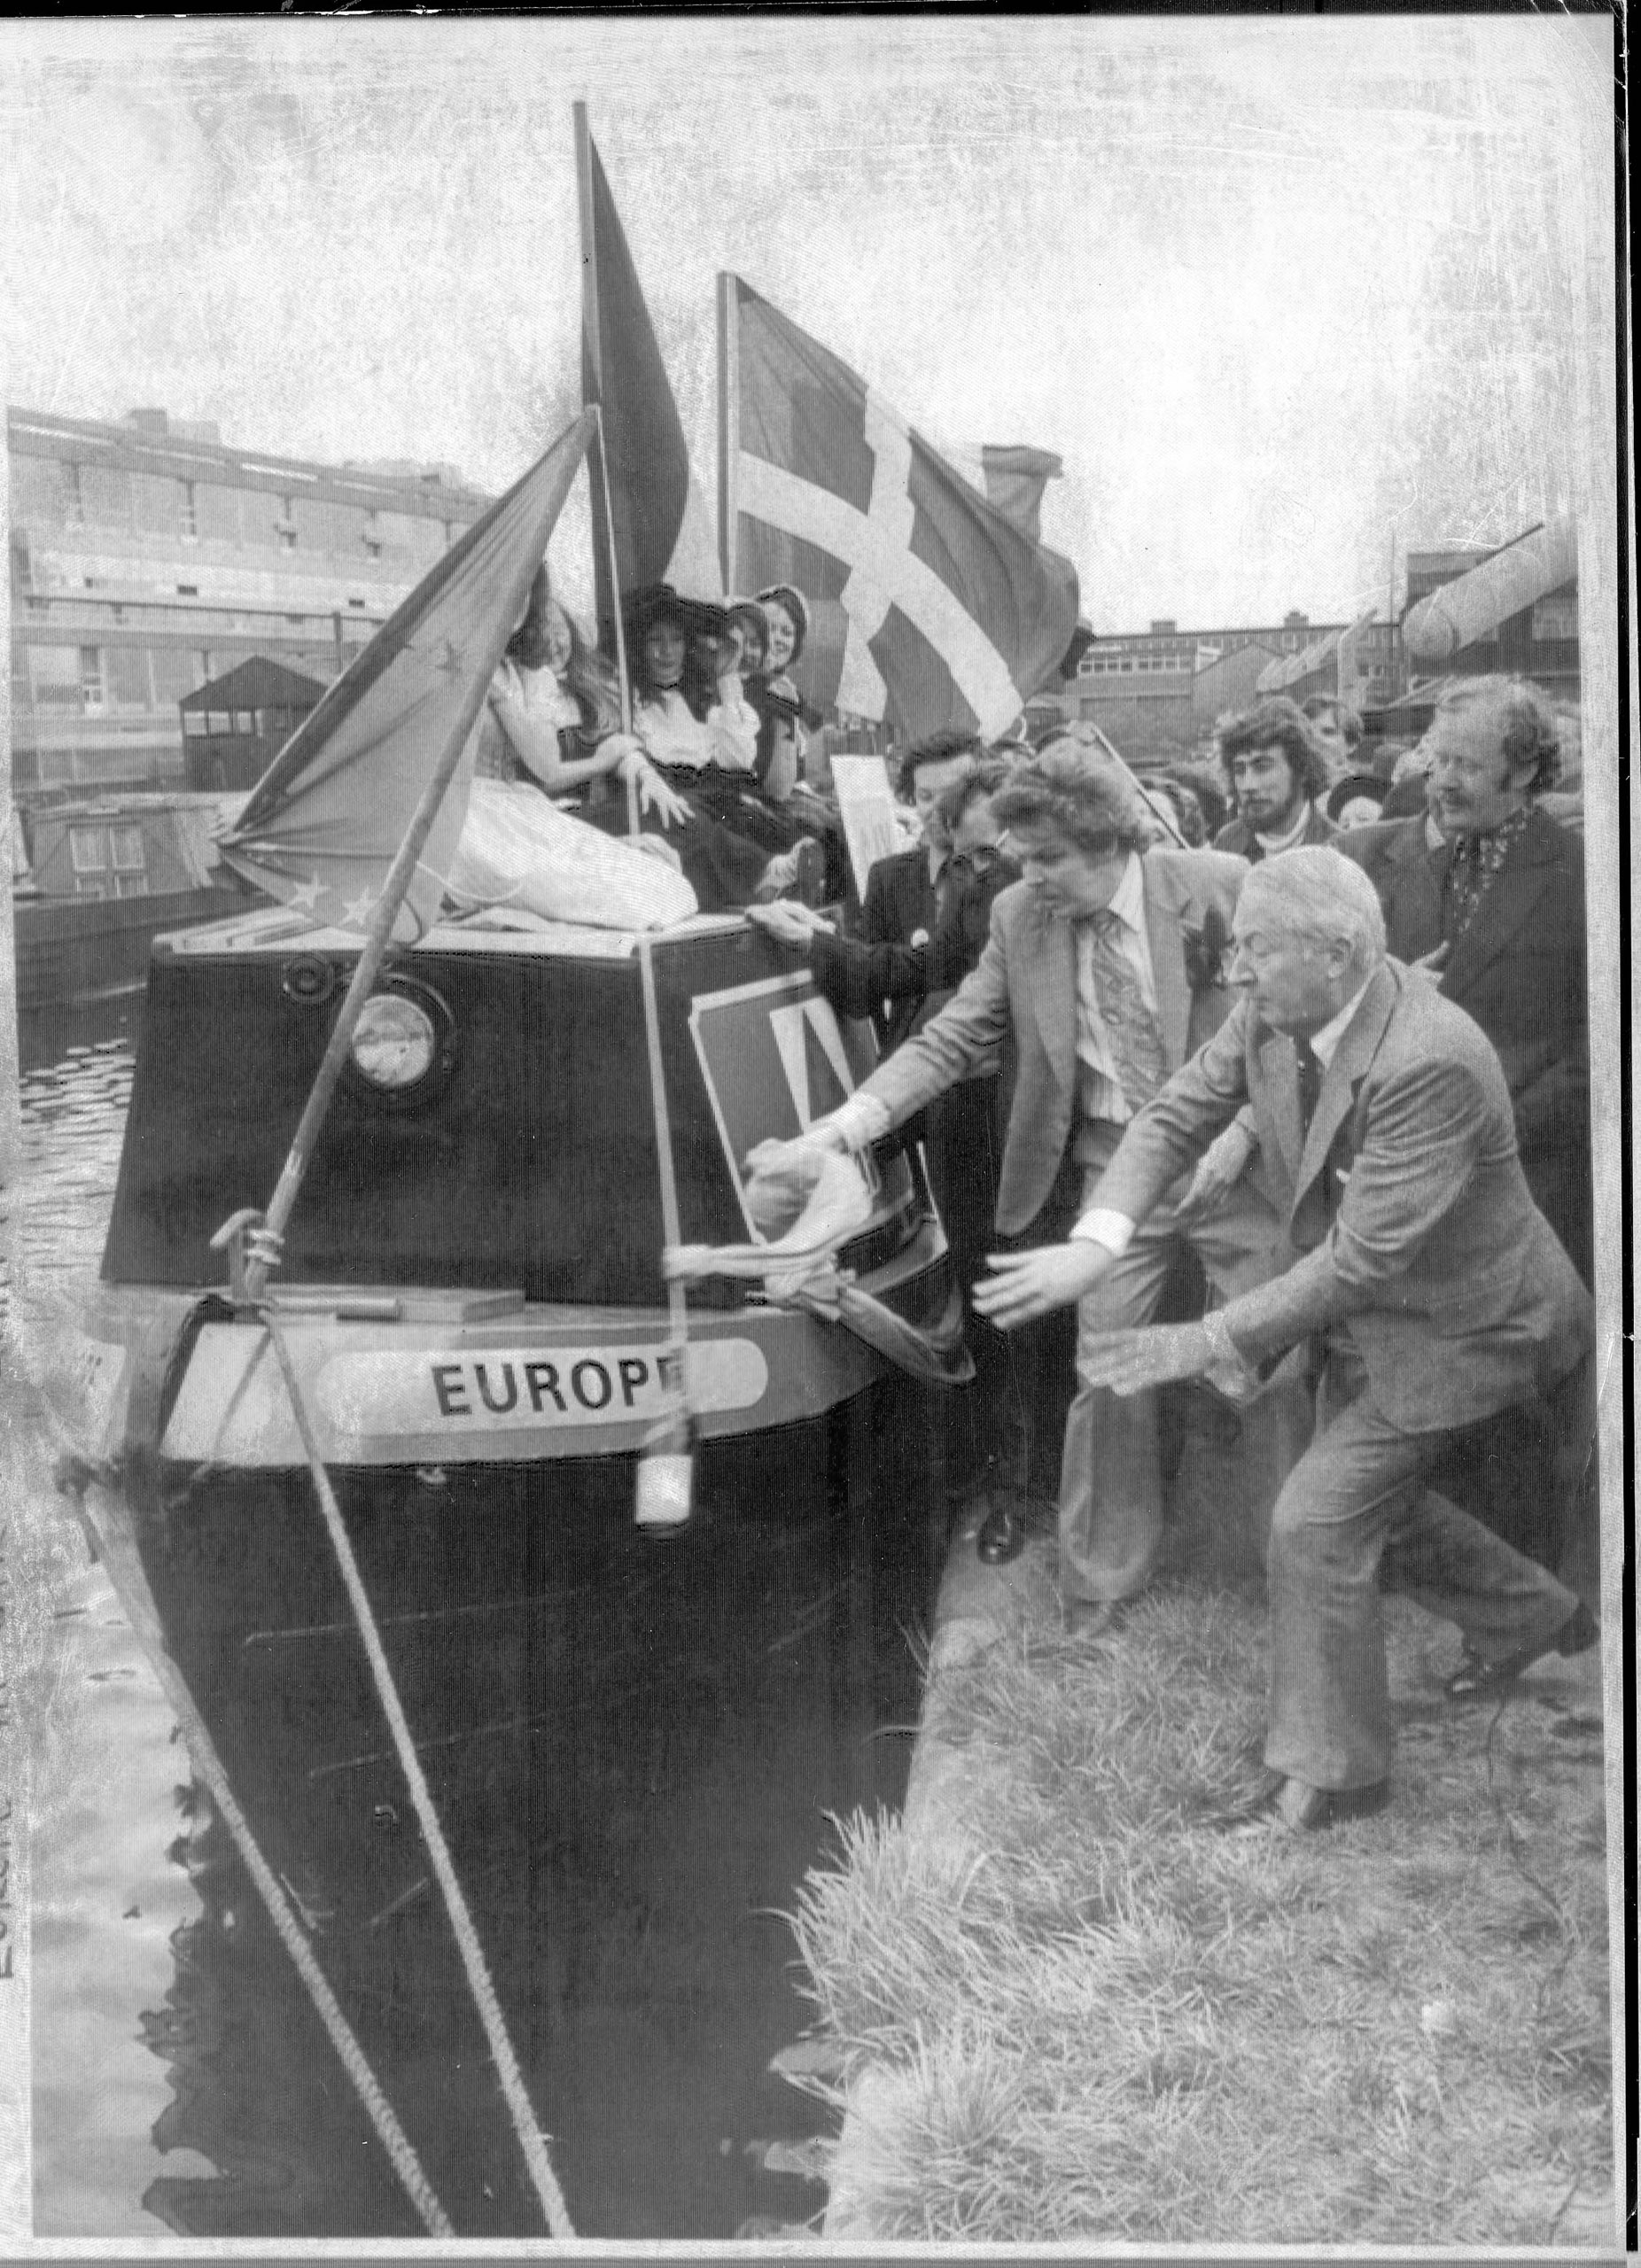 Mr Edward Heath goes aboard the Europe boat on Birmingham's canal, as part of Britain in Europe campaign,1975.